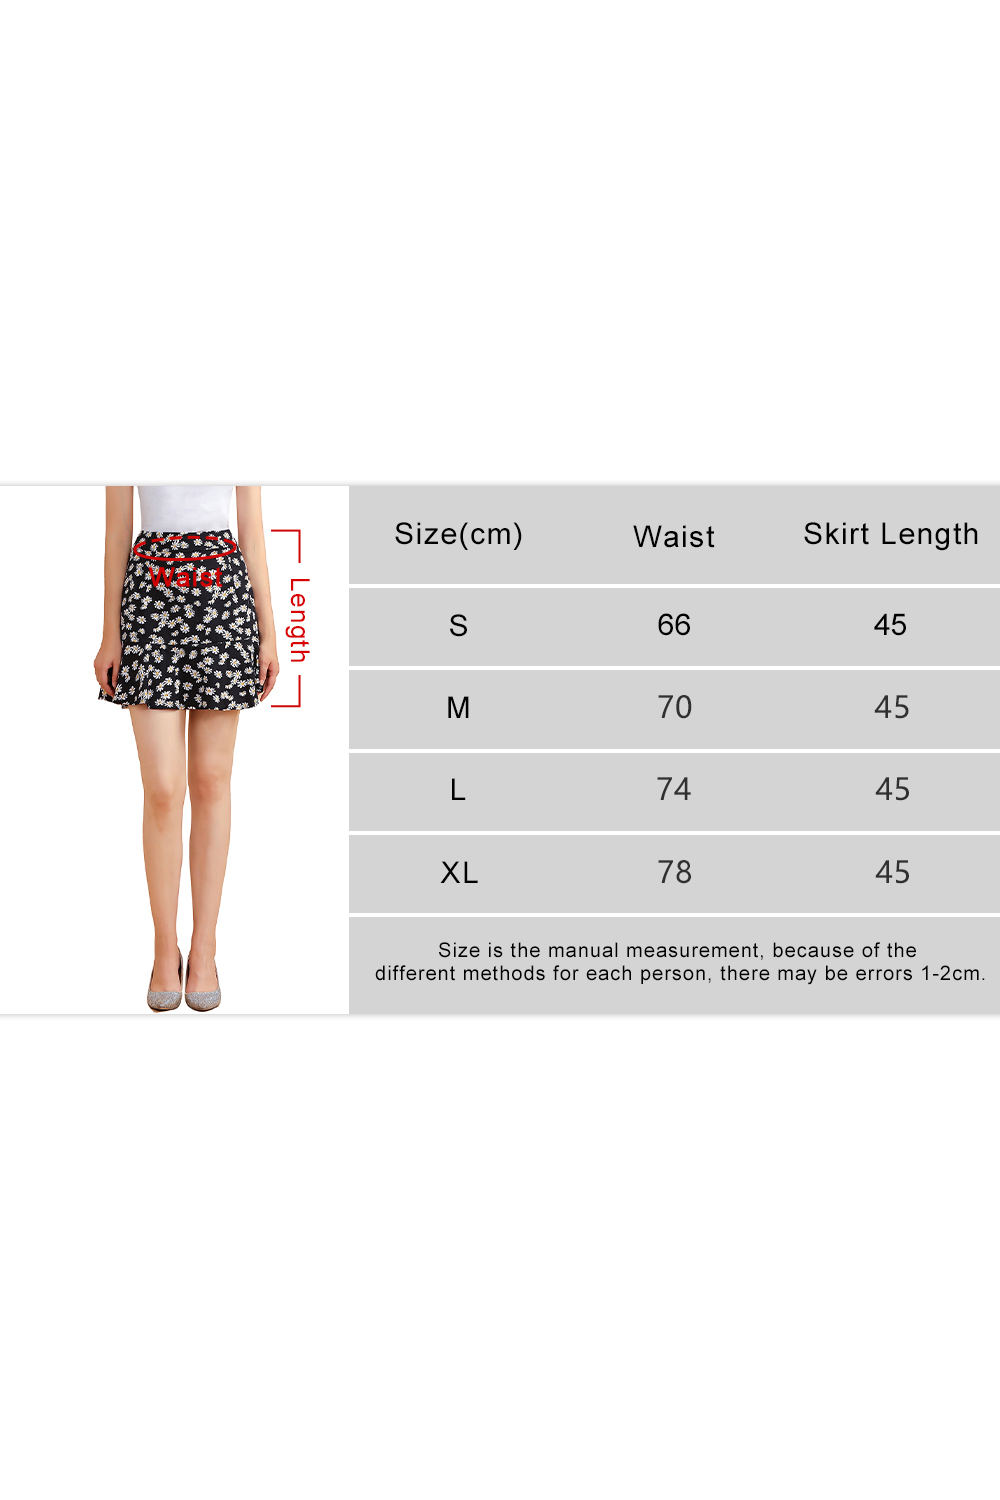 Vintage Women Petticoat Floral Print Chiffon Short Tulle Skirt Underskirt Adult Tutu Rockabilly Wedding Accessories 2020